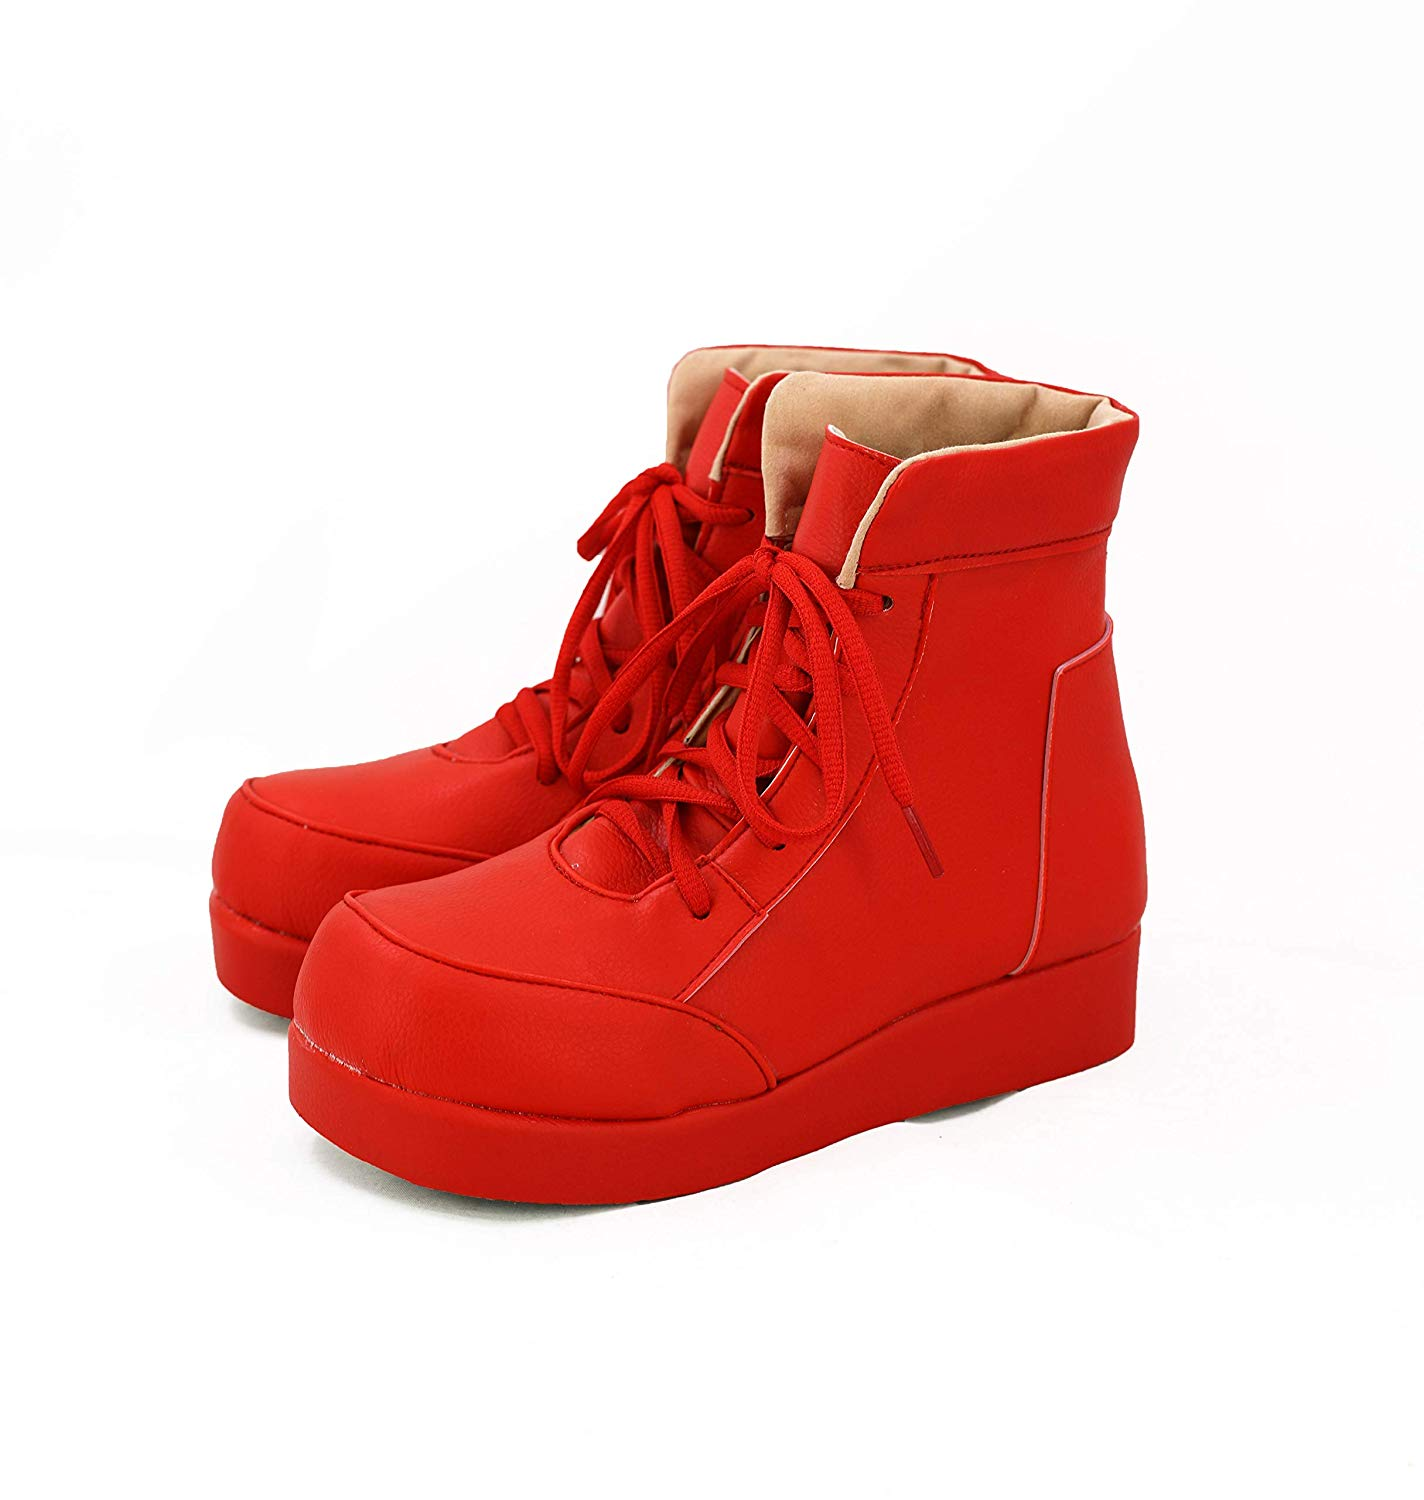 Red Blood Cell Shoes Cosplay Anime Cells at Work Red Blood Cell Cosplay Boots Red Shoes Custom Made Any Size|Shoes| - AliExpress